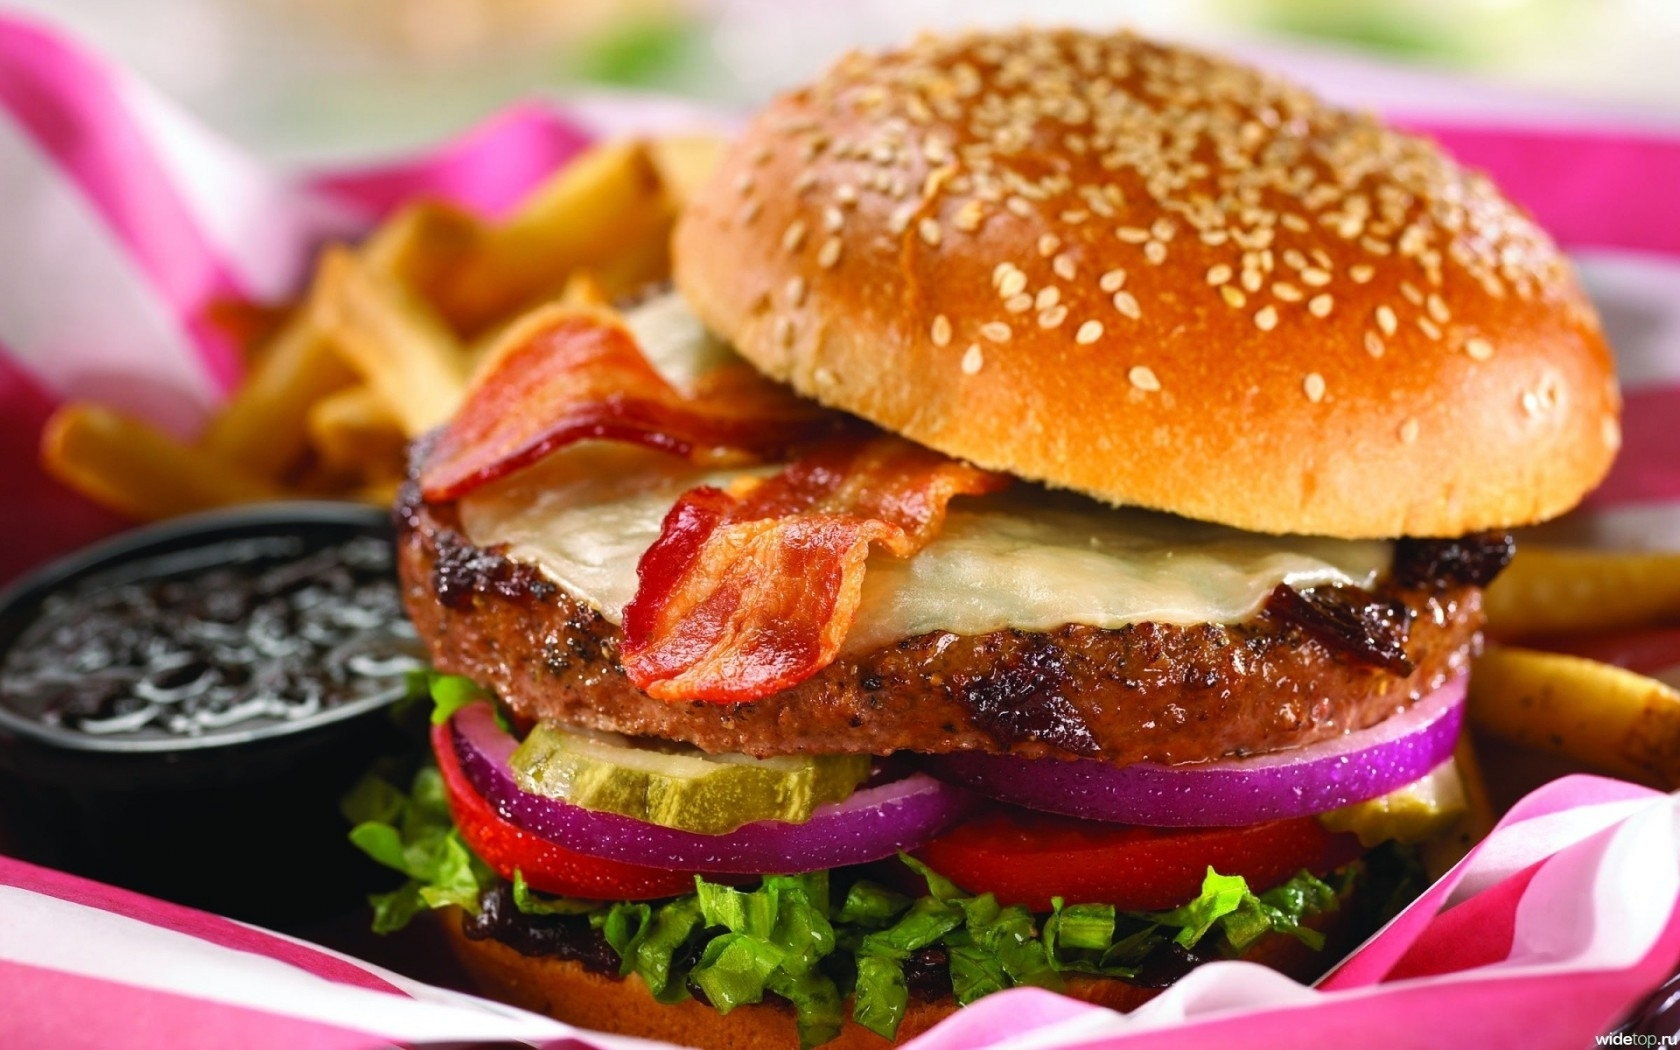 Cuisine Burger Yummy Fast Food Fast Food Photo 33414472 Fanpop